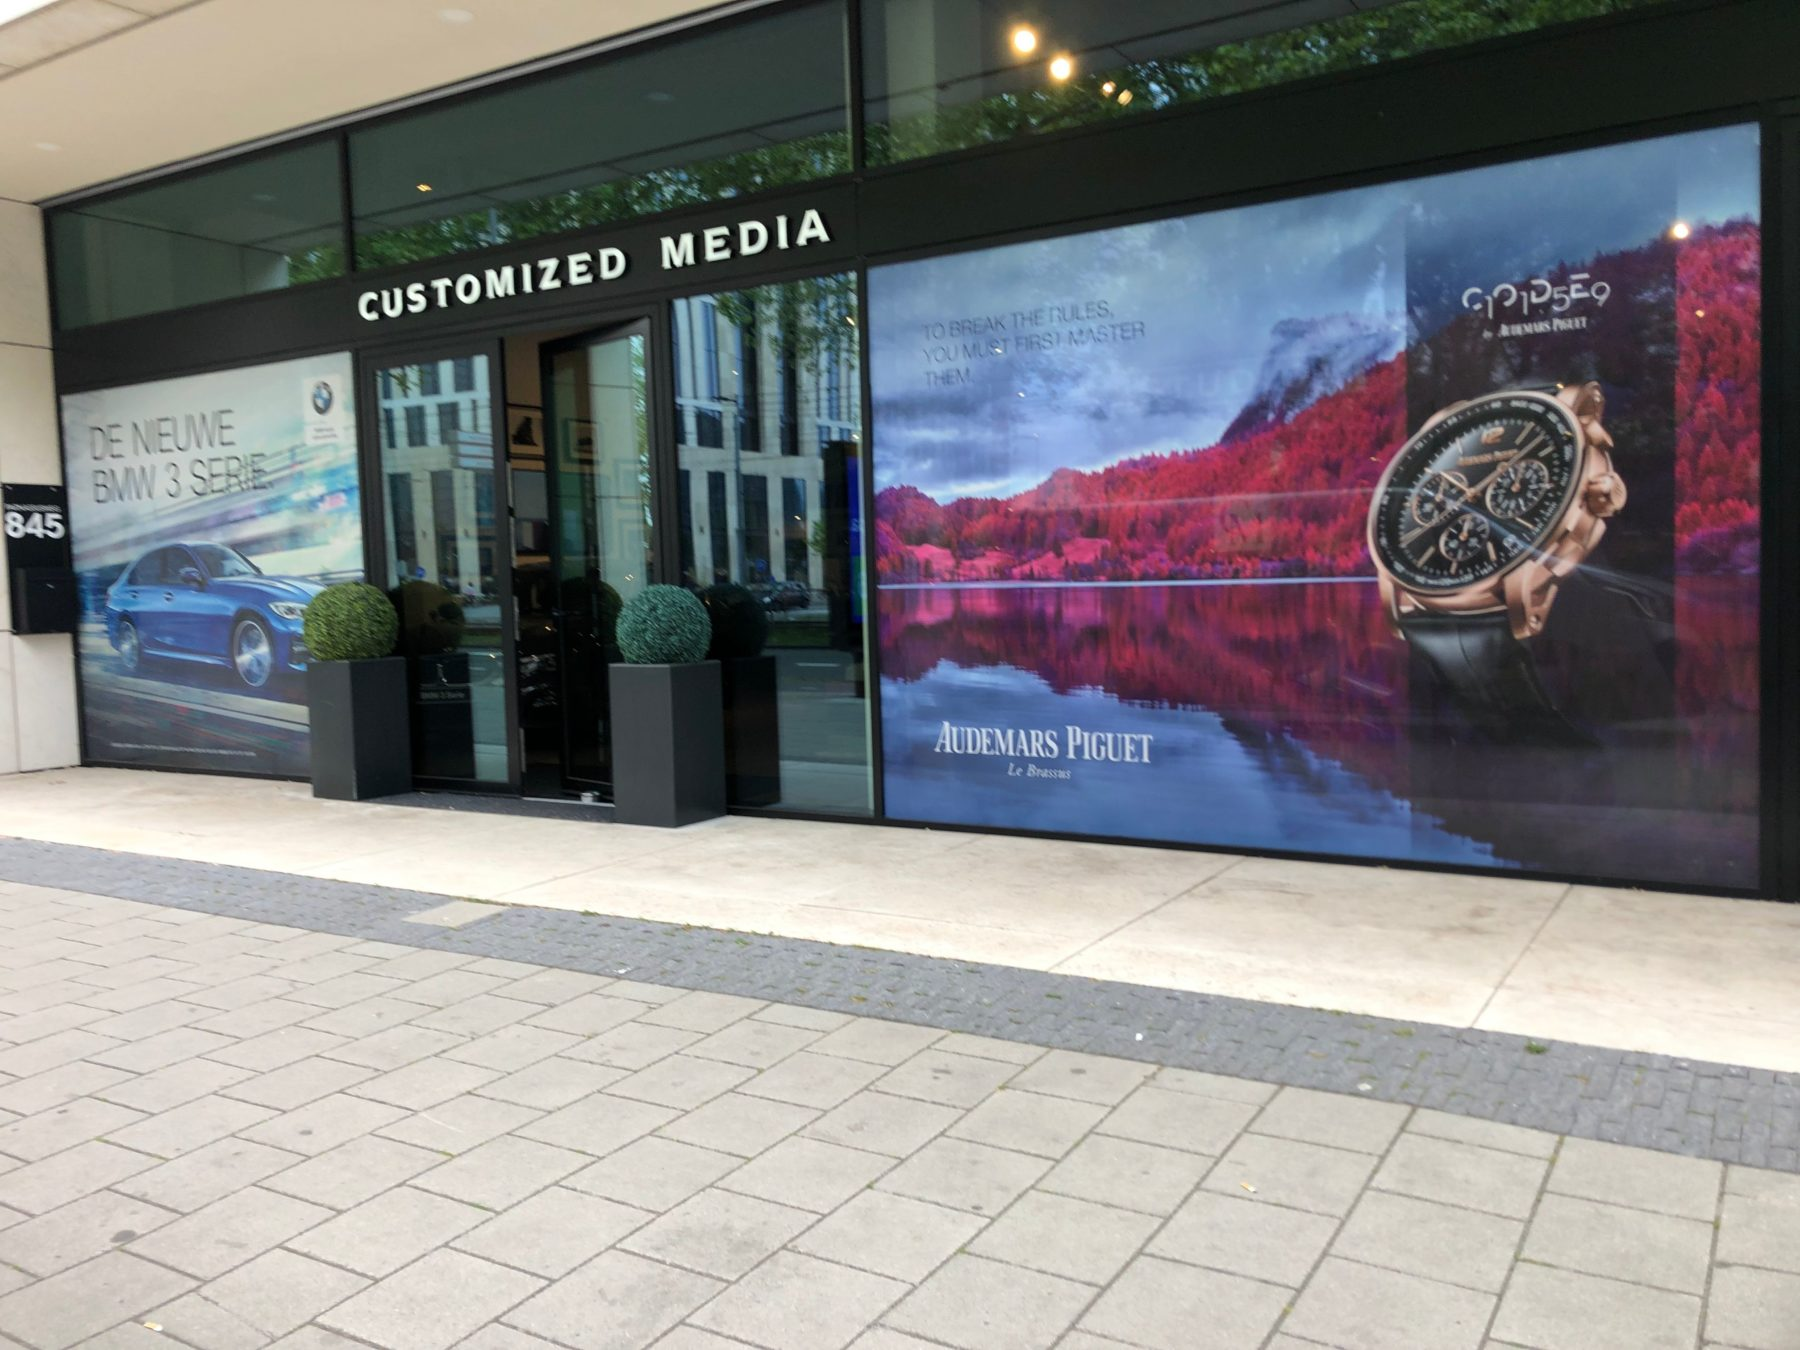 Customized Media, Zuidas Amsterdam – Window visuals